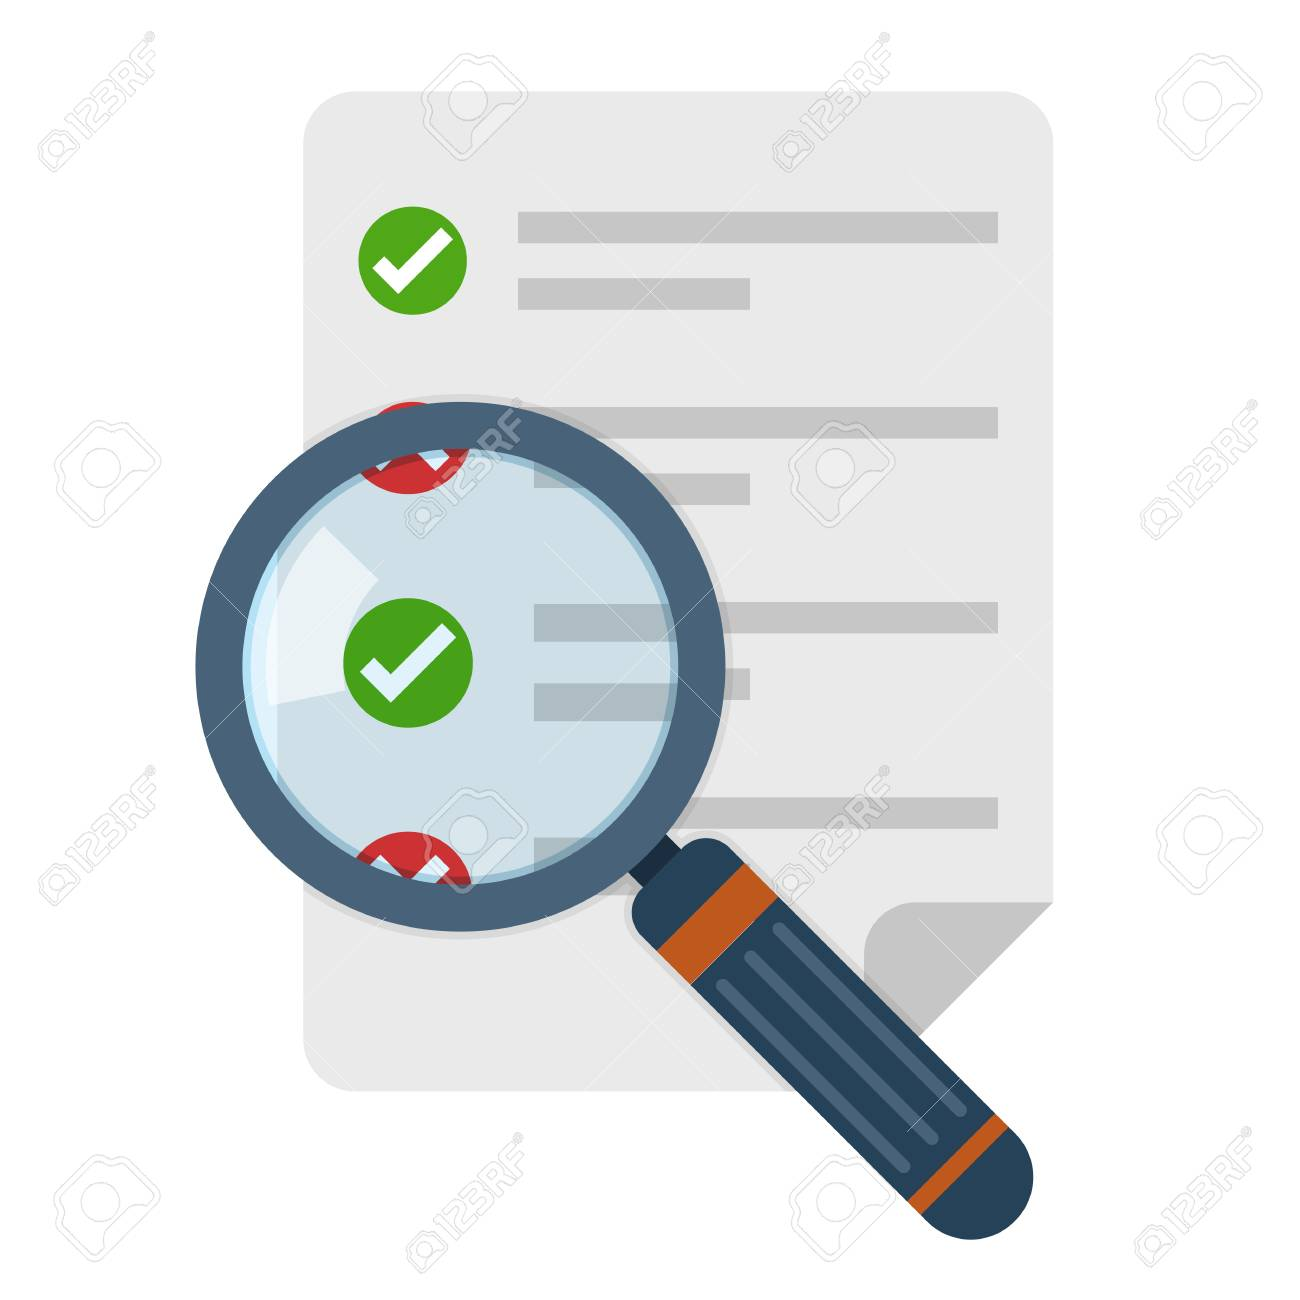 Magnifier and checklist icon in flat design. Vector illustration. Analytics concept - 91520317